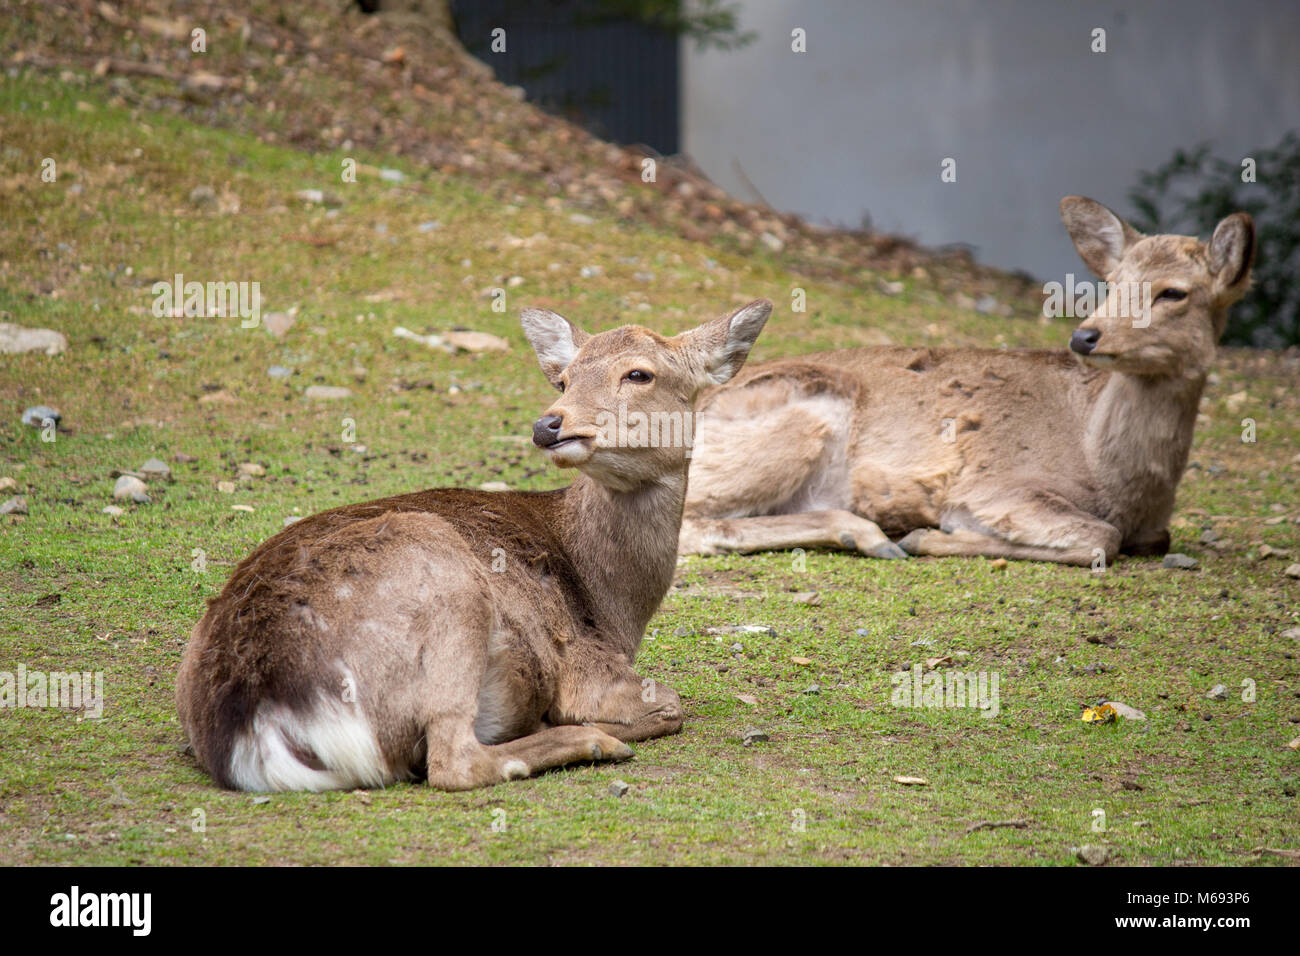 Deer grazing around the Tōdai-ji Buddhist temple complex that was once one of the powerful Seven Great Temples, - Stock Image